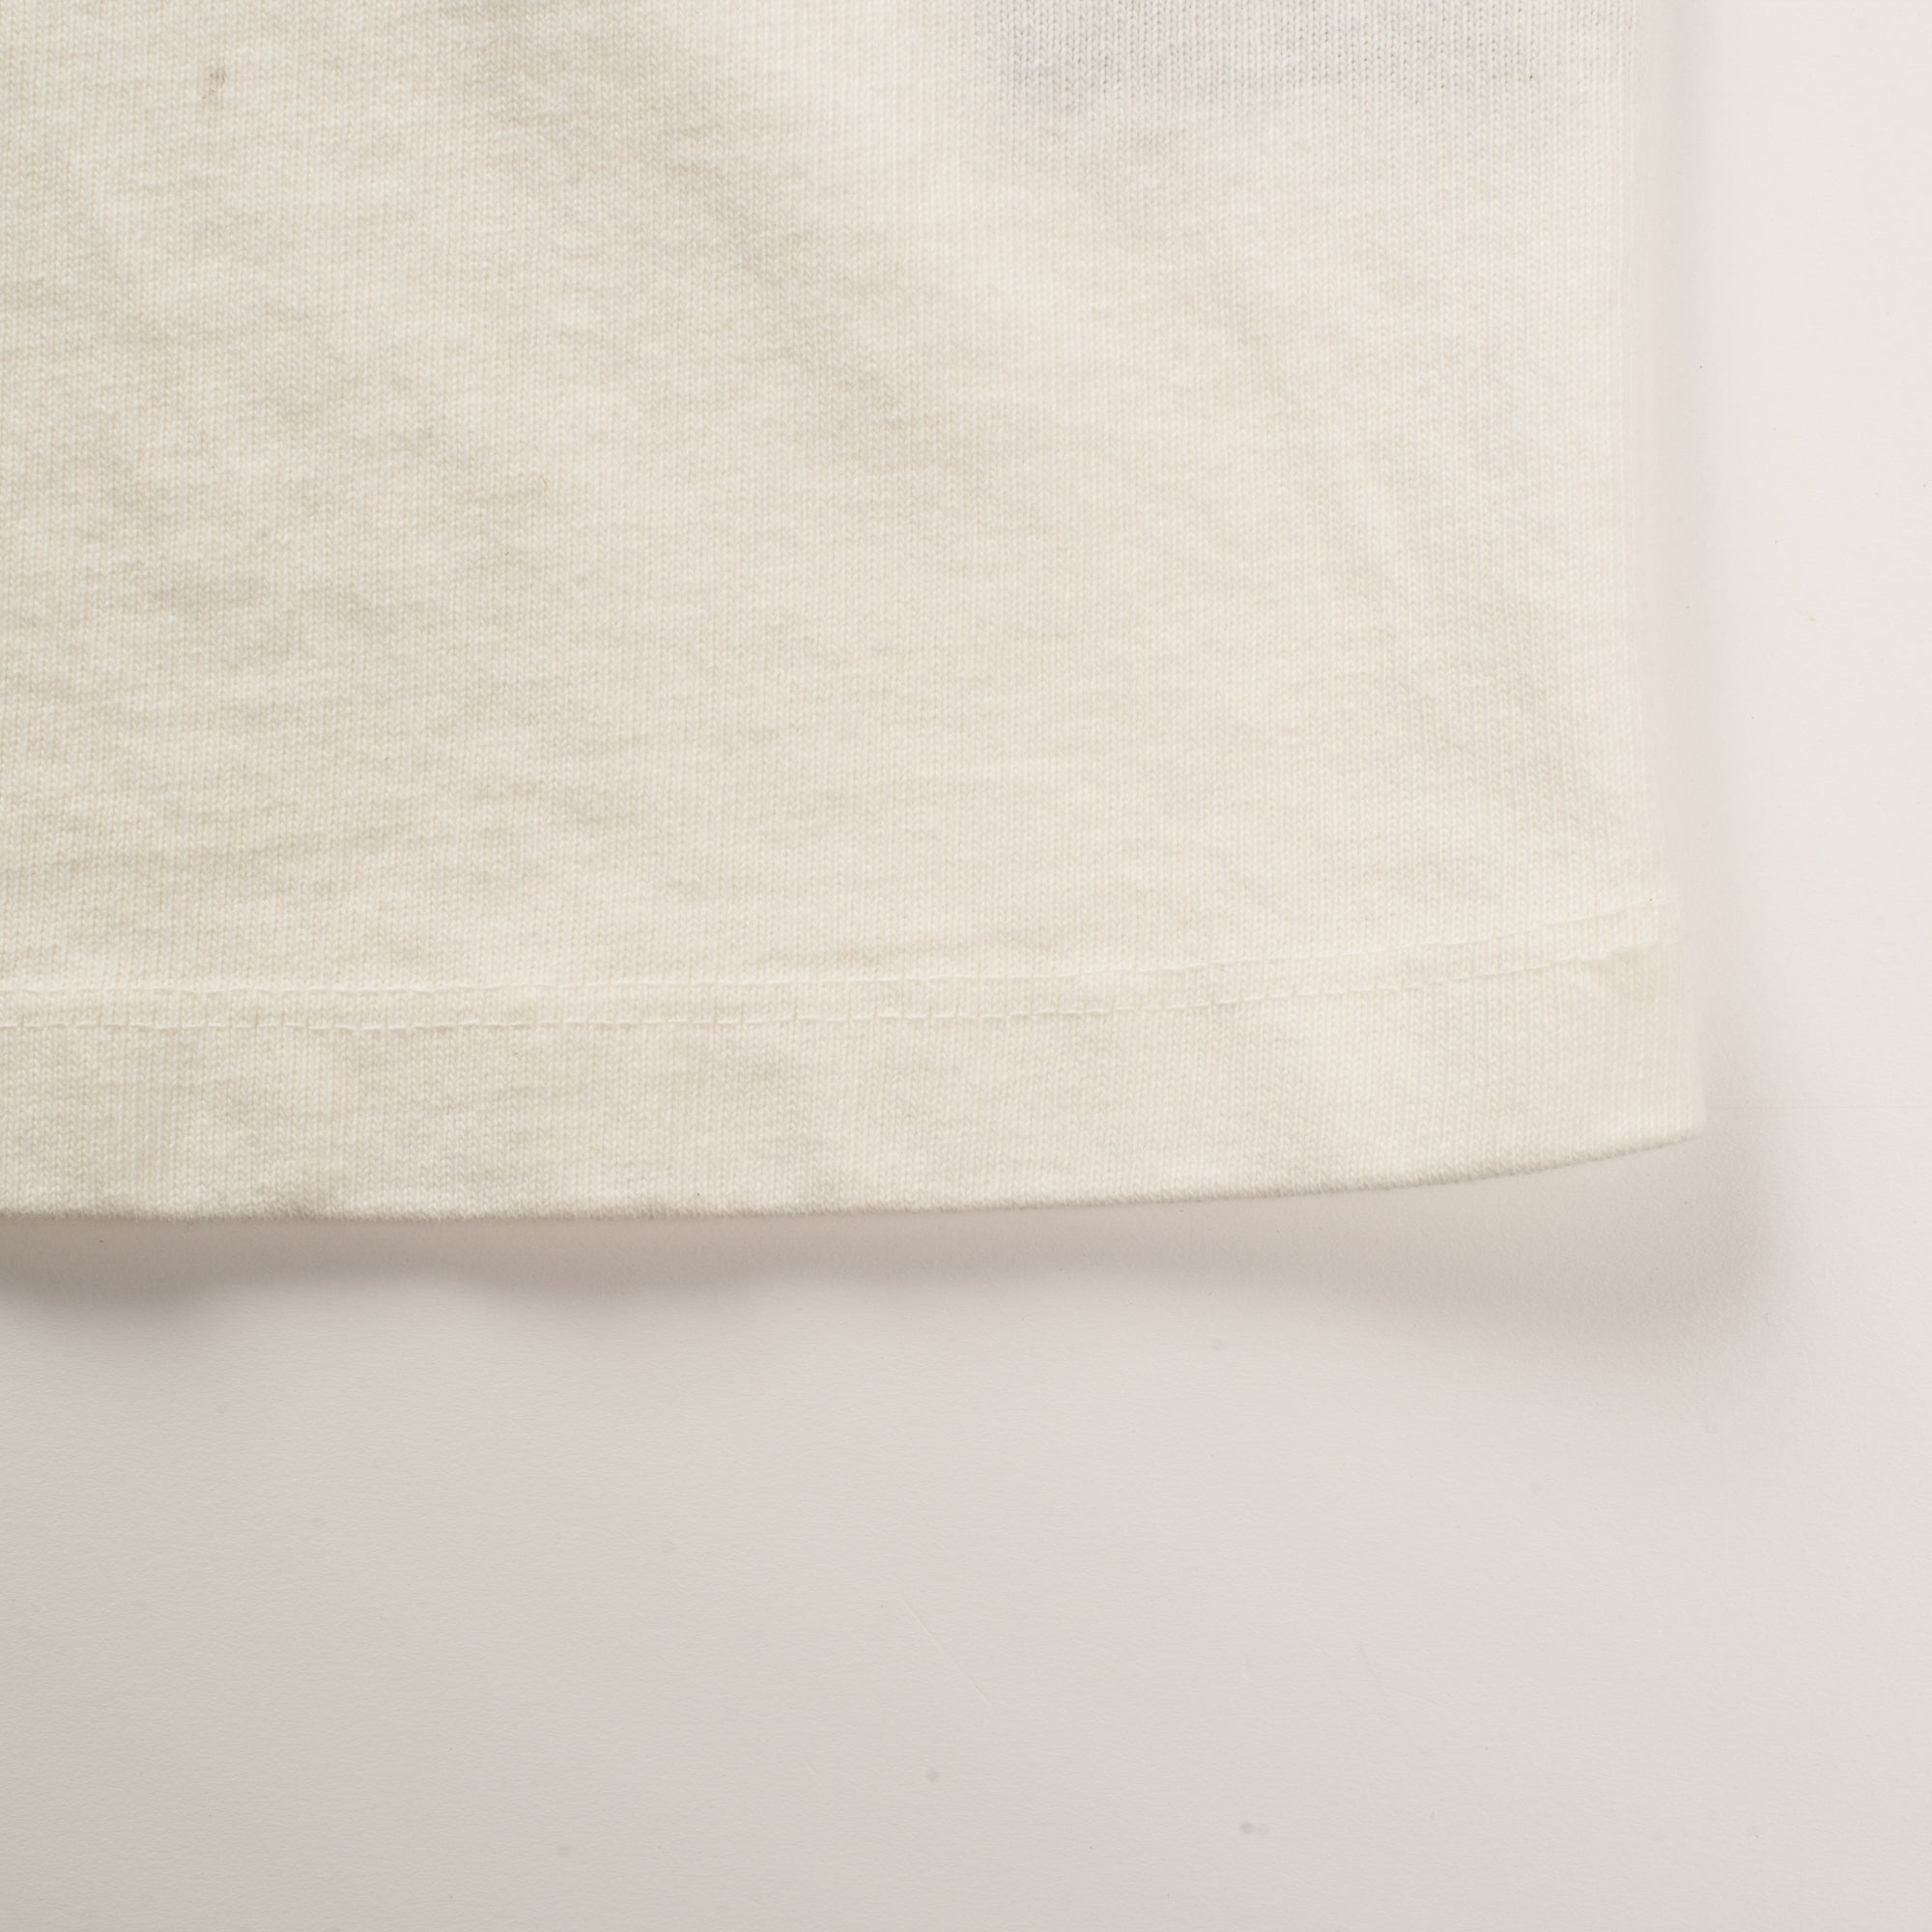 13 OUNCE HENLEY WHITE Bottom